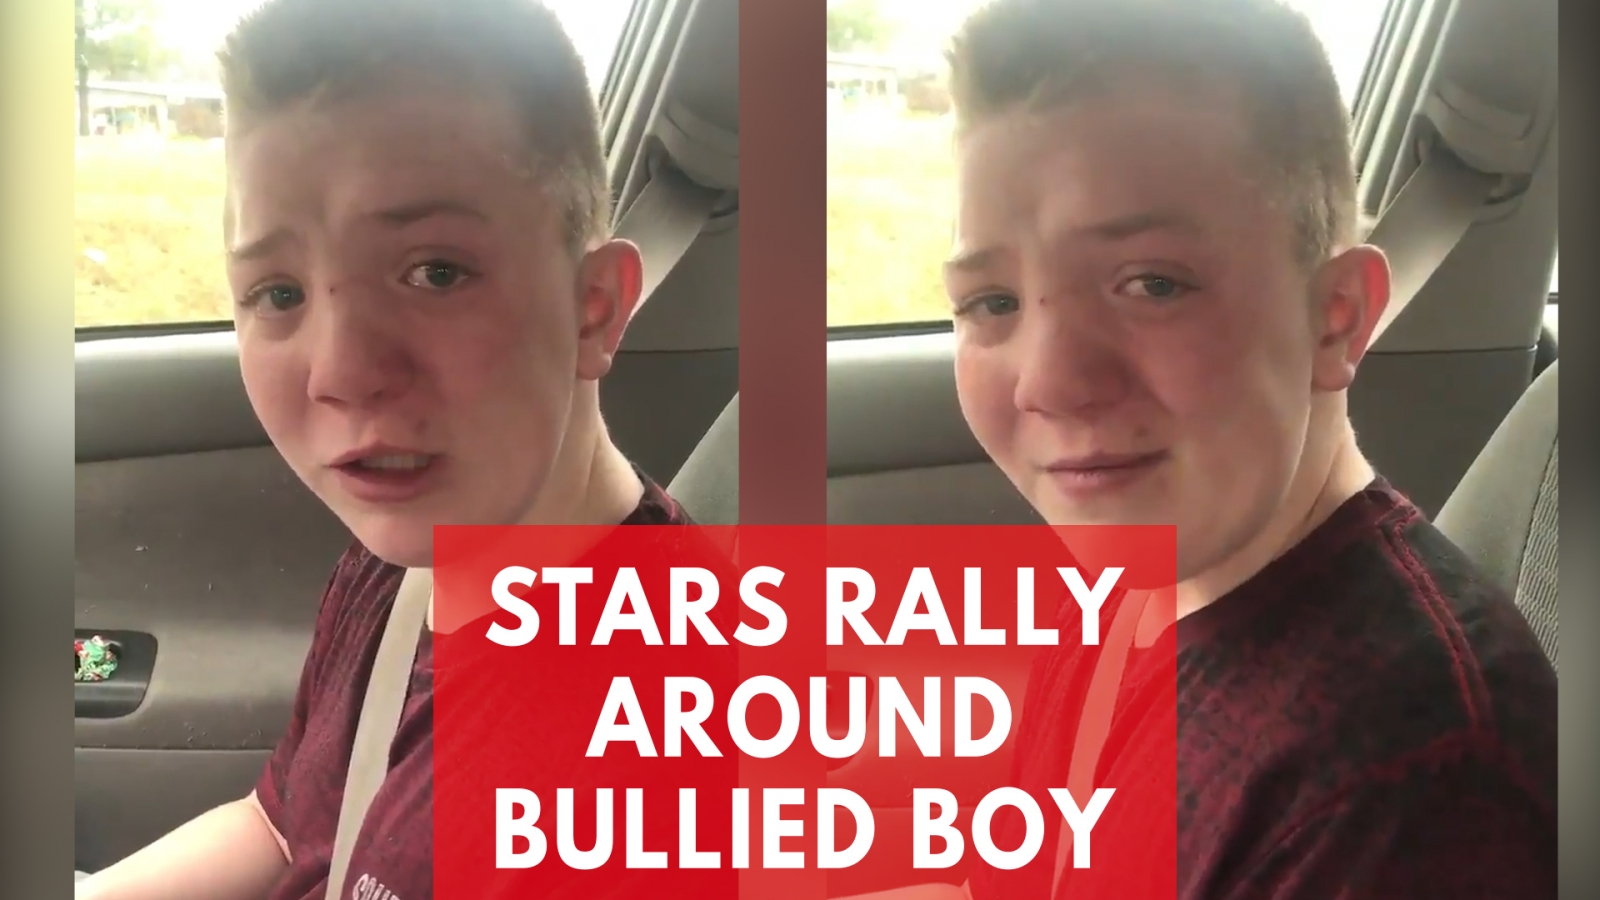 justin-bieber-chris-evans-other-celebrities-rally-support-for-bullied-boy-after-video-goes-viral